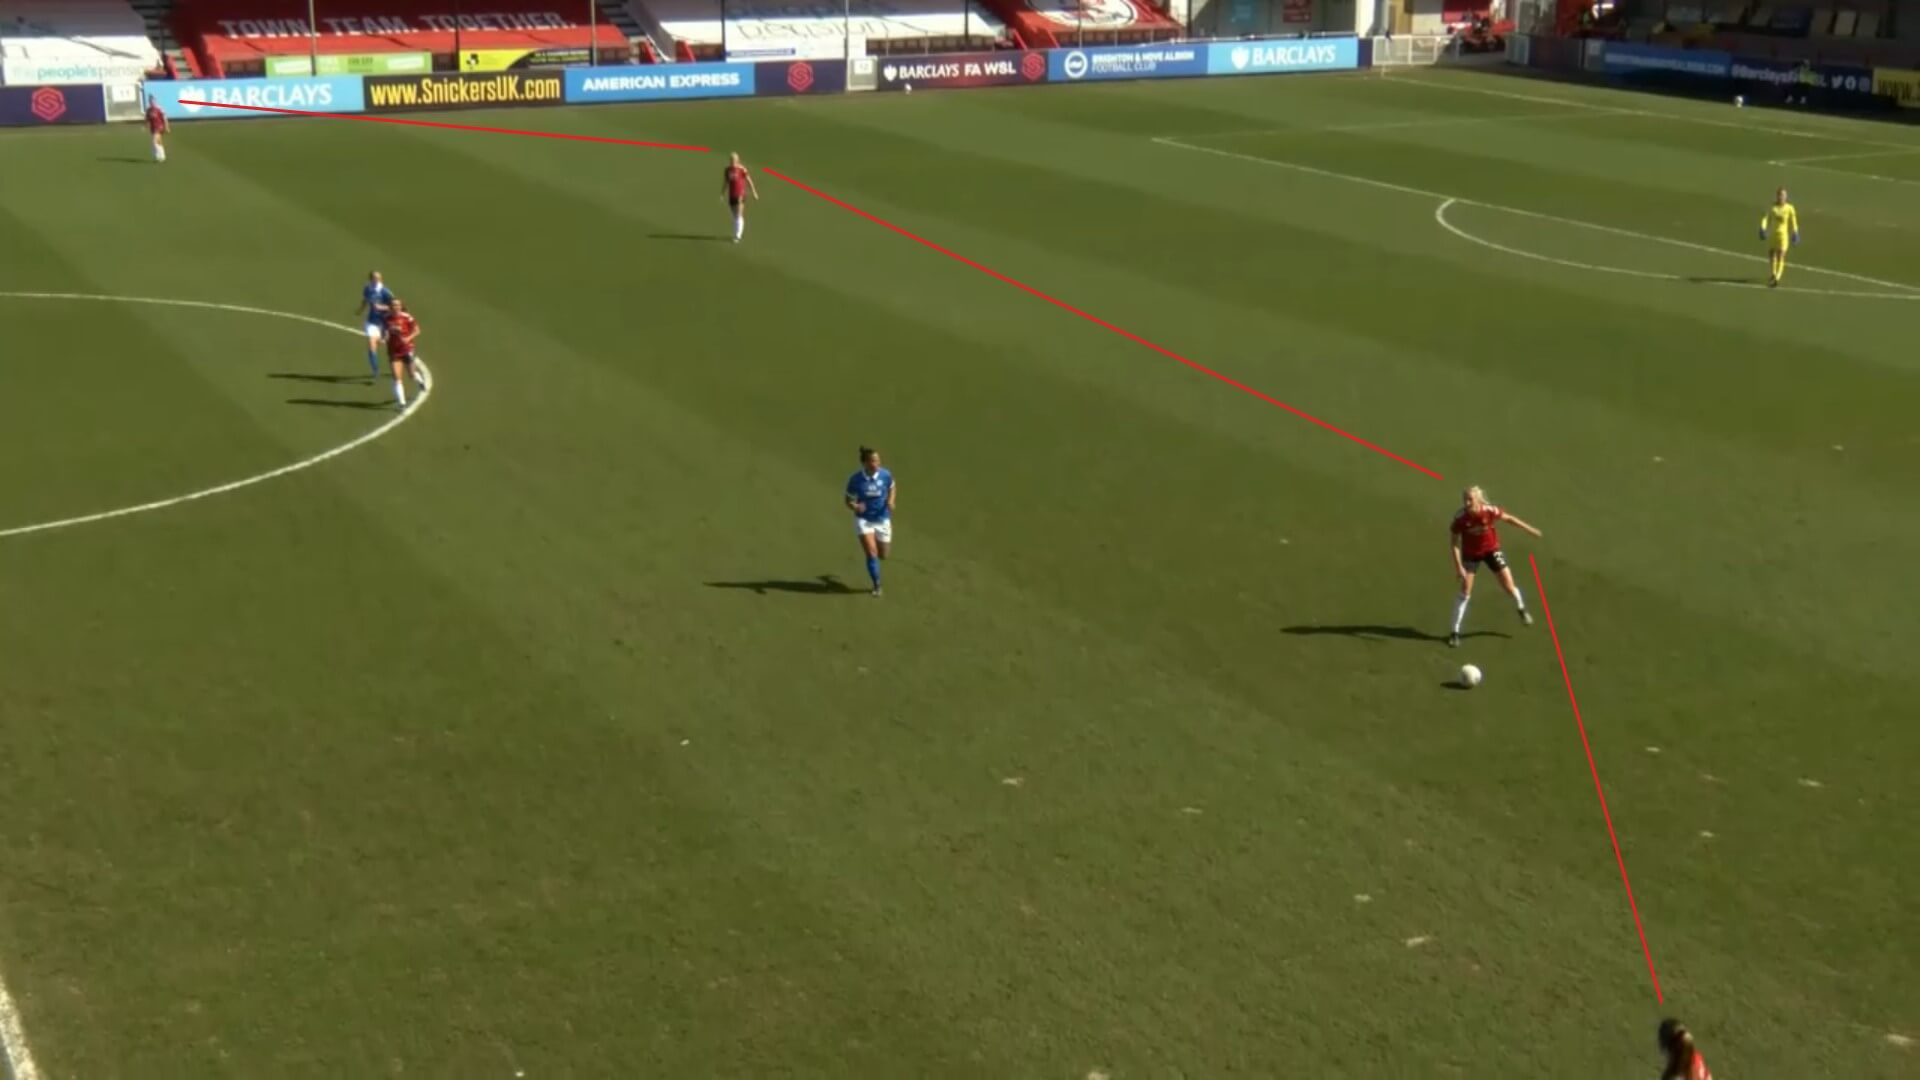 FAWSL 2020/2021: Brighton and Hove Albion Women v Manchester United Women - tactical analysis tactics